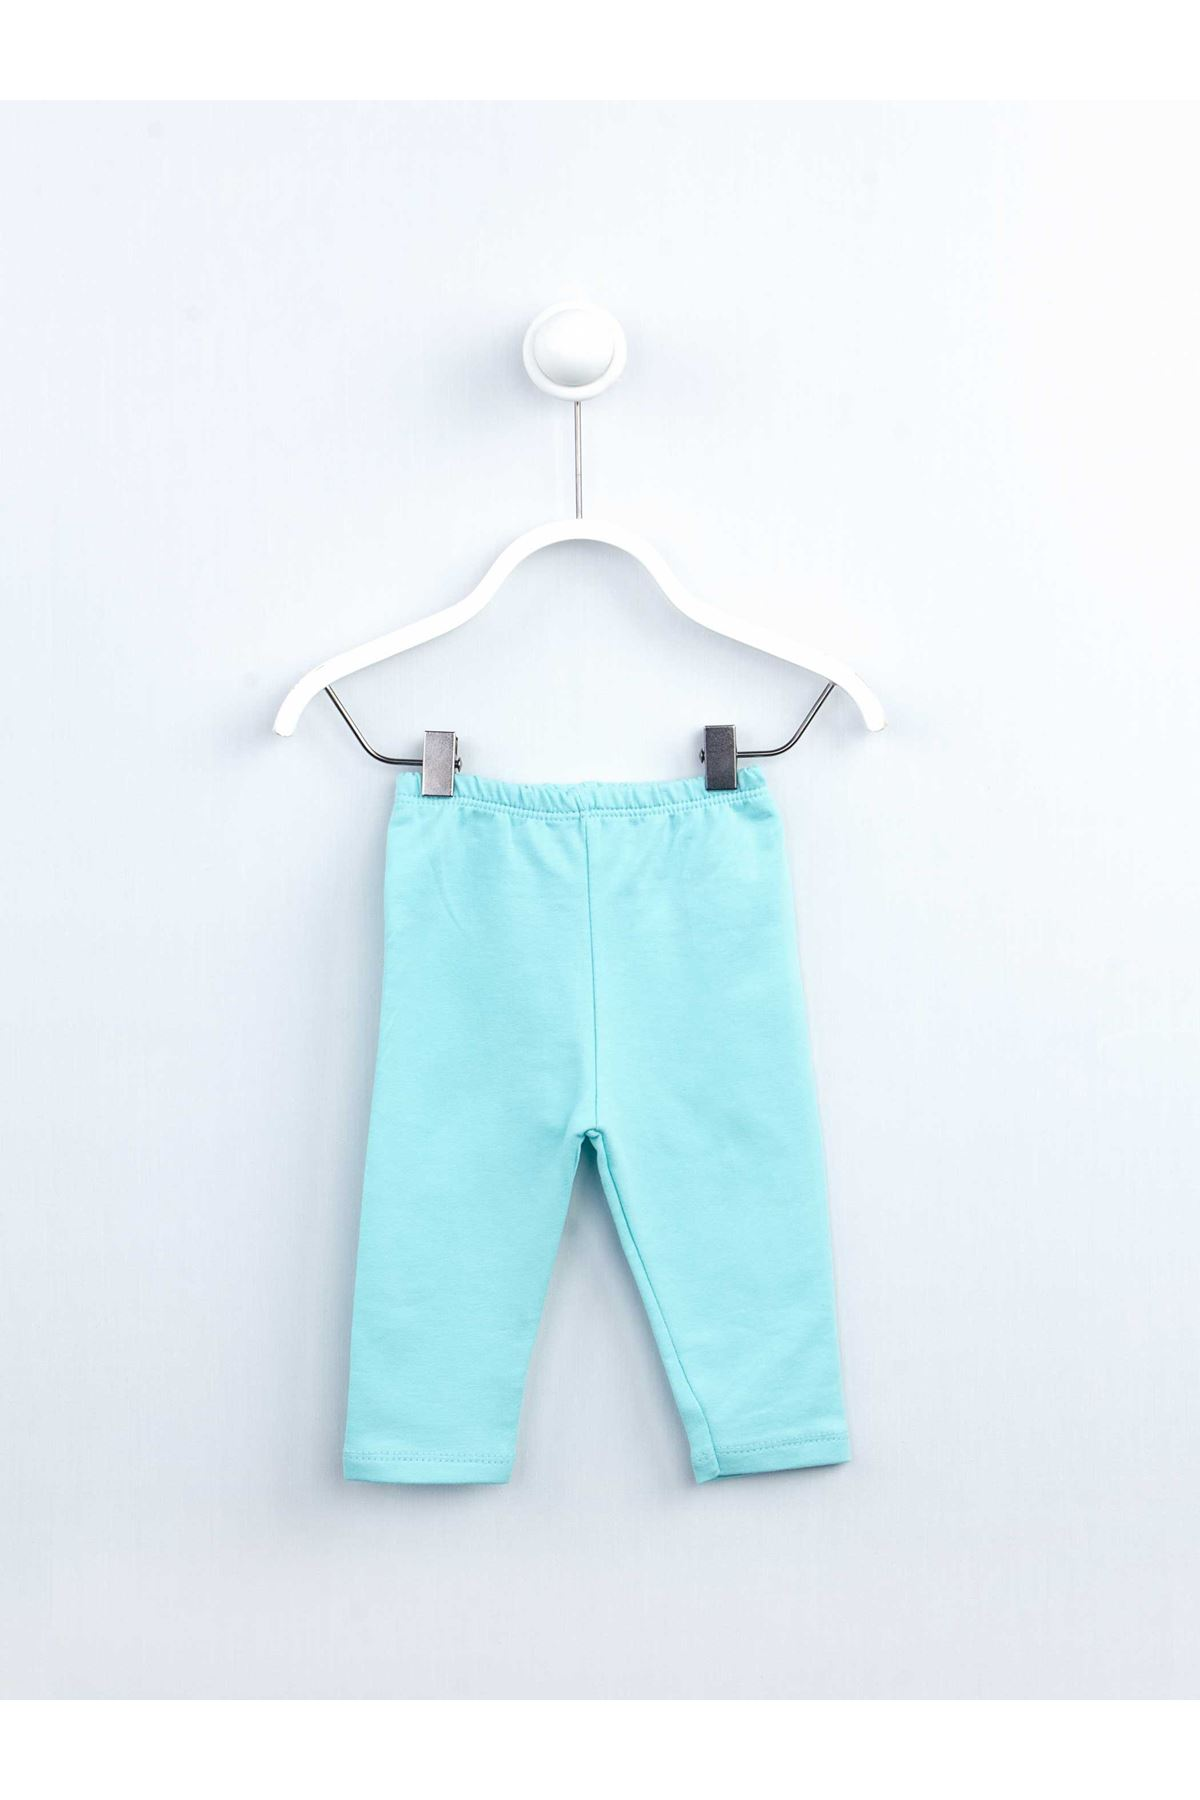 Green Baby Girl 2 Piece Set Tracksuit Bottom Babies Girls Wear Top Outfit Cotton Casual Casual Outfit Models